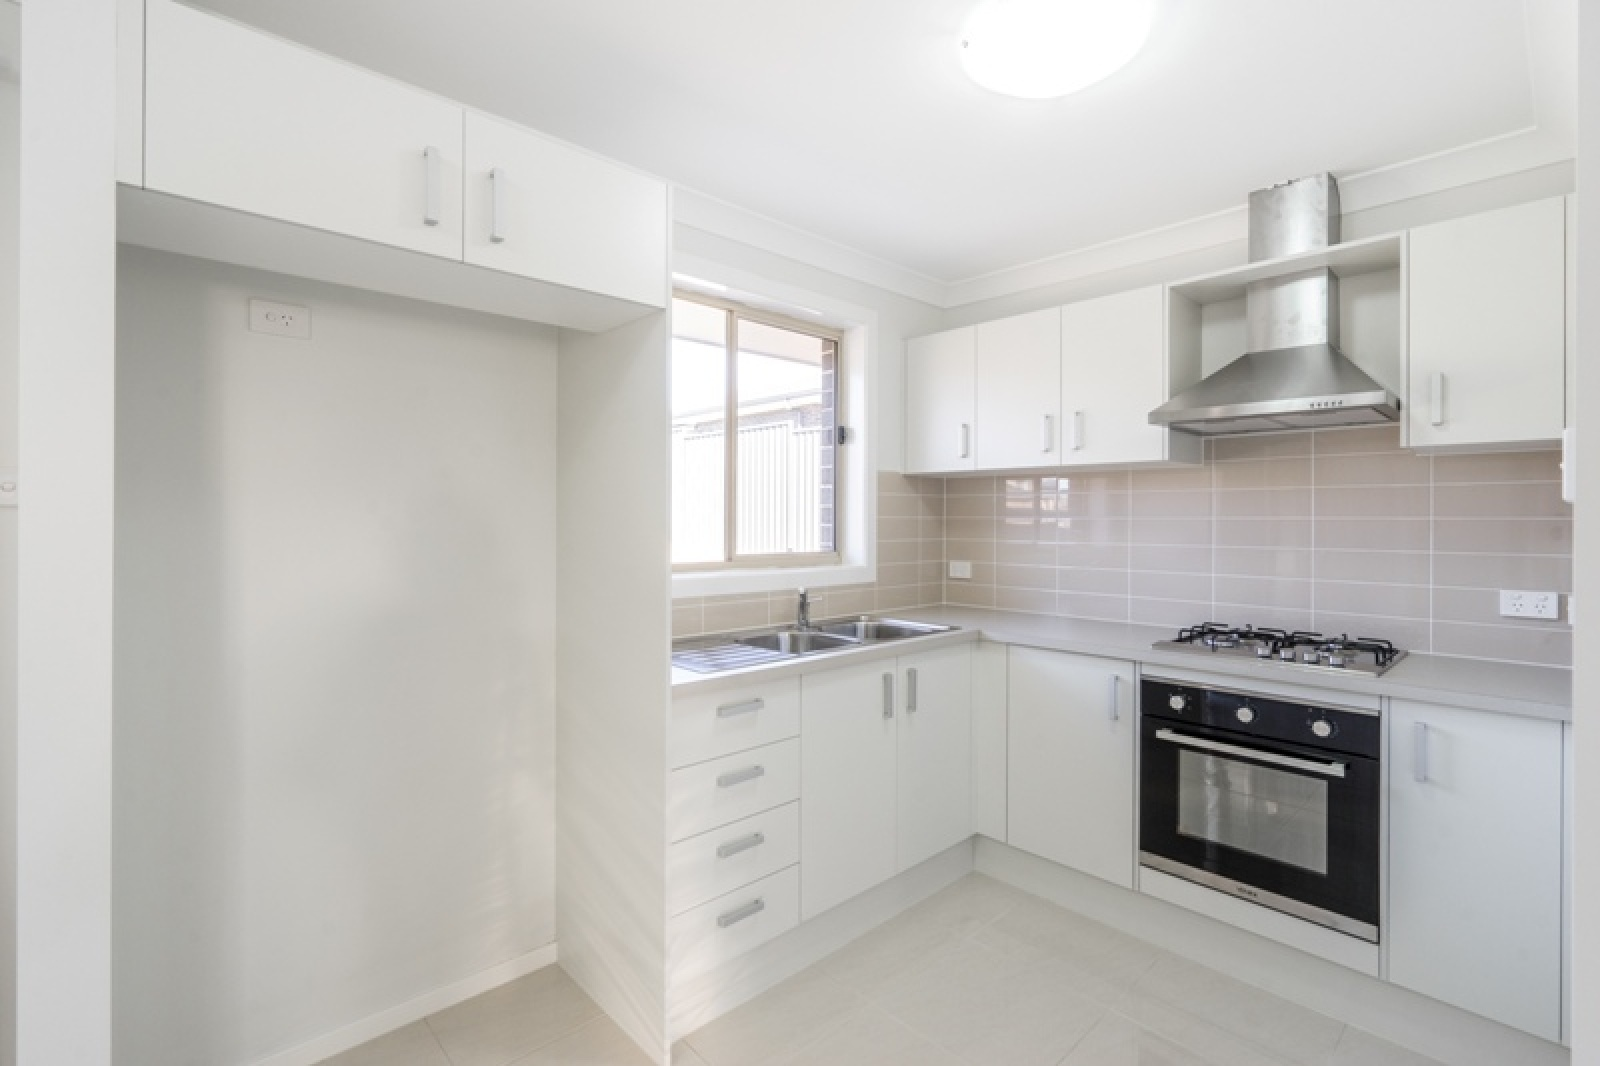 24a Richards Loop,Oran Park,NSW,2 Bedrooms Bedrooms,1 BathroomBathrooms,House,Richards Loop,1307